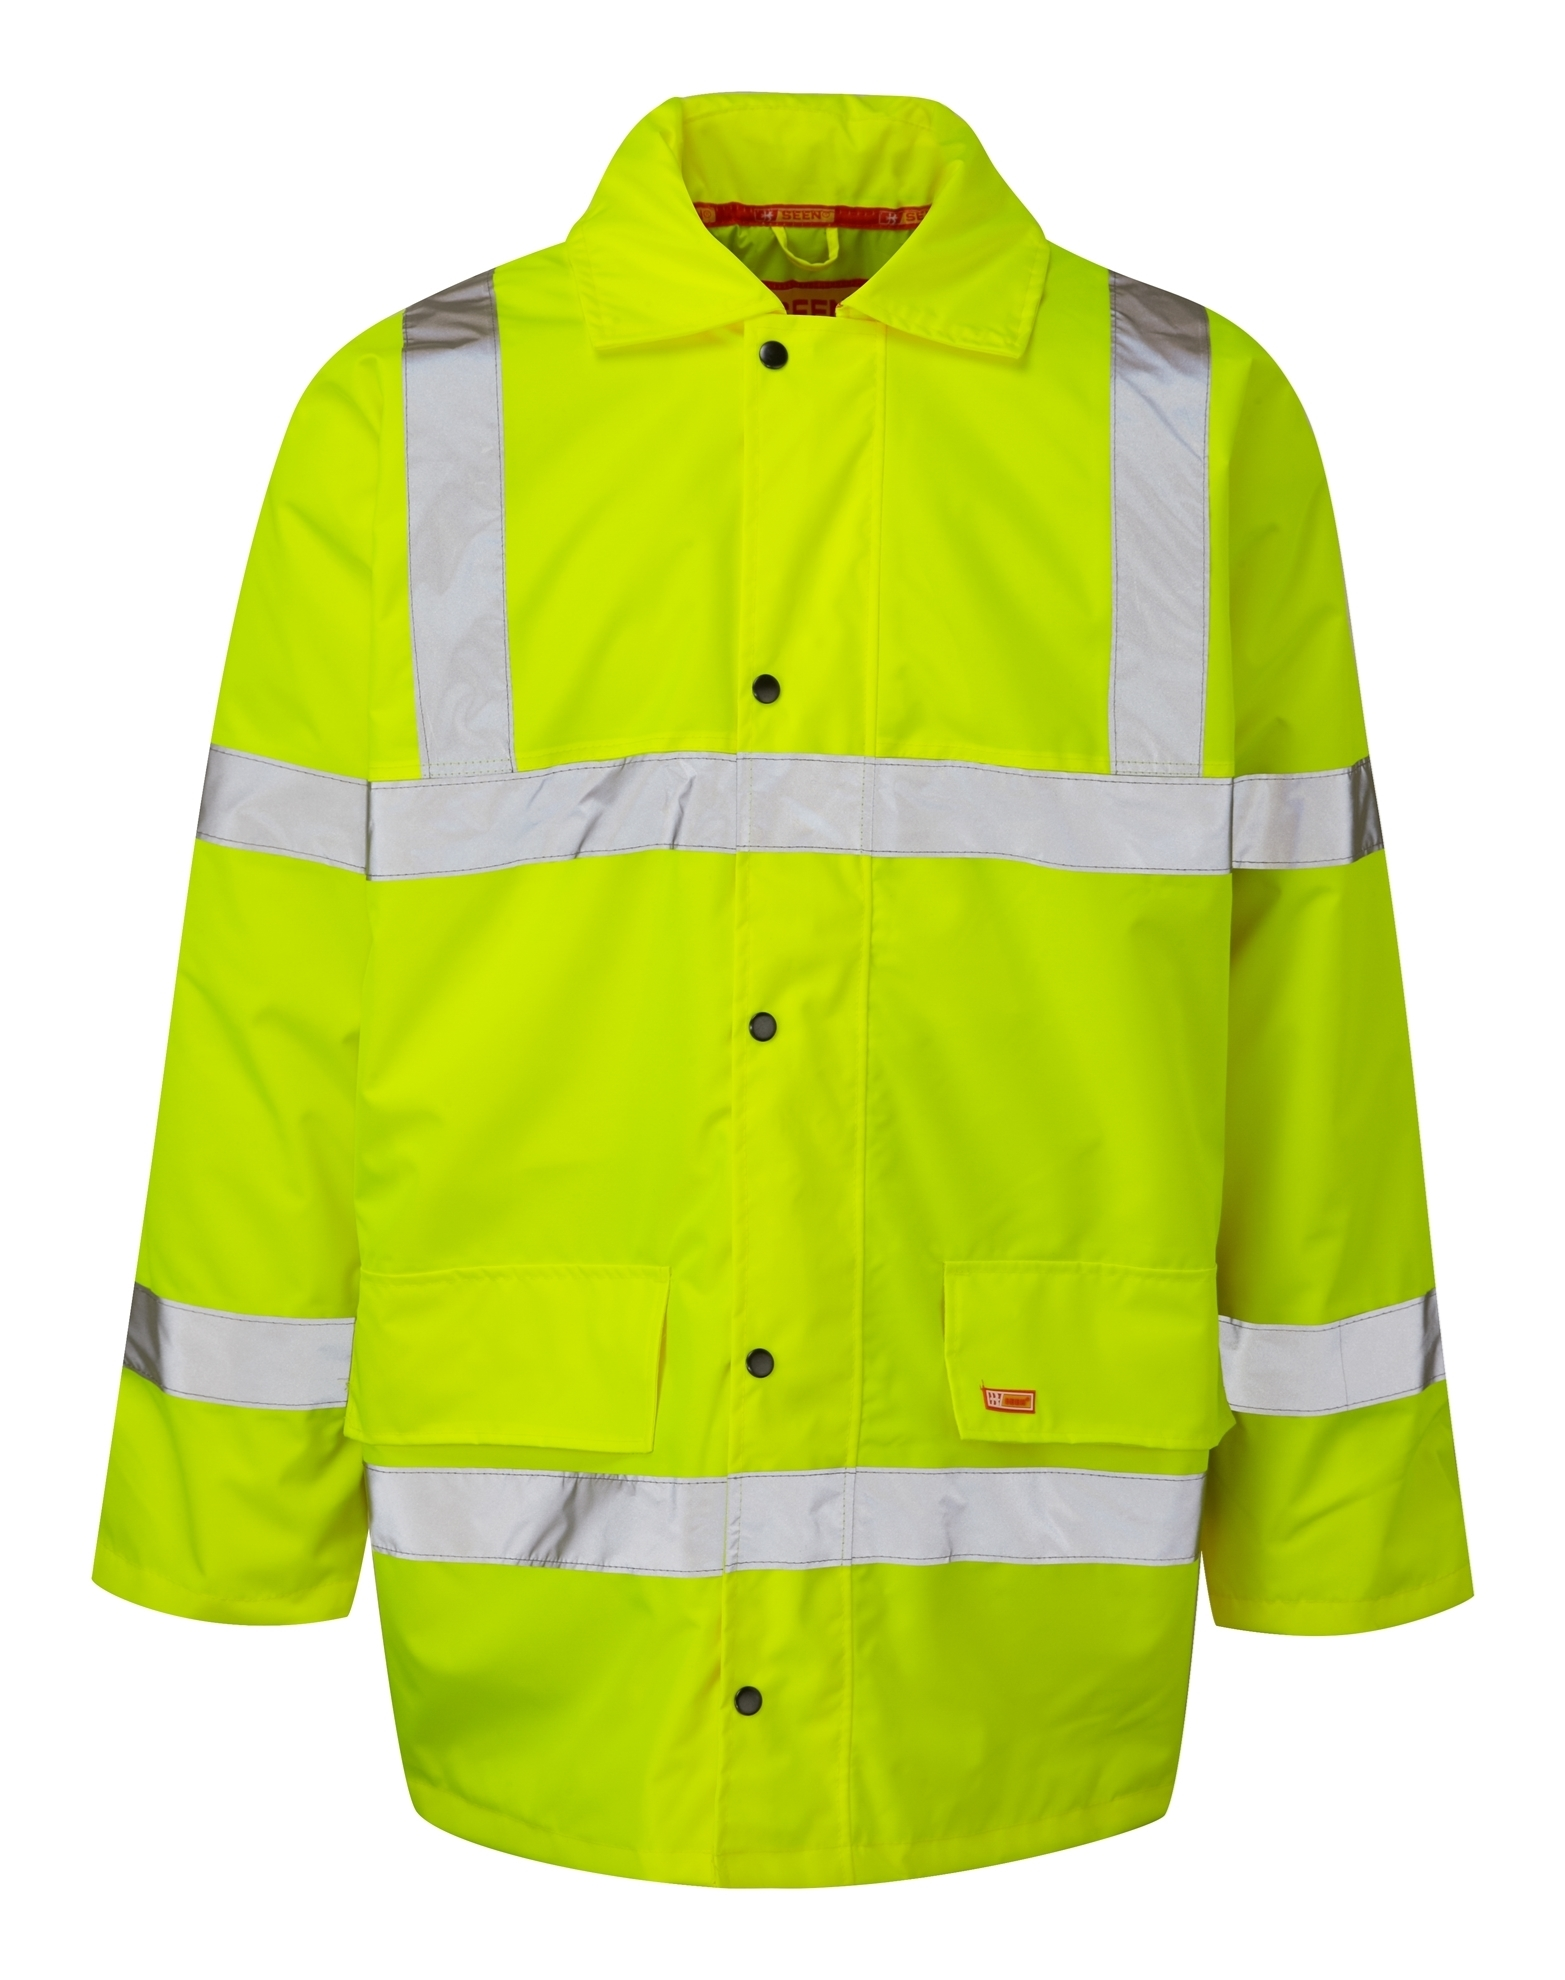 Picture of Hi-Vis Jacket (Constructor Traffic Jacket) - Yellow